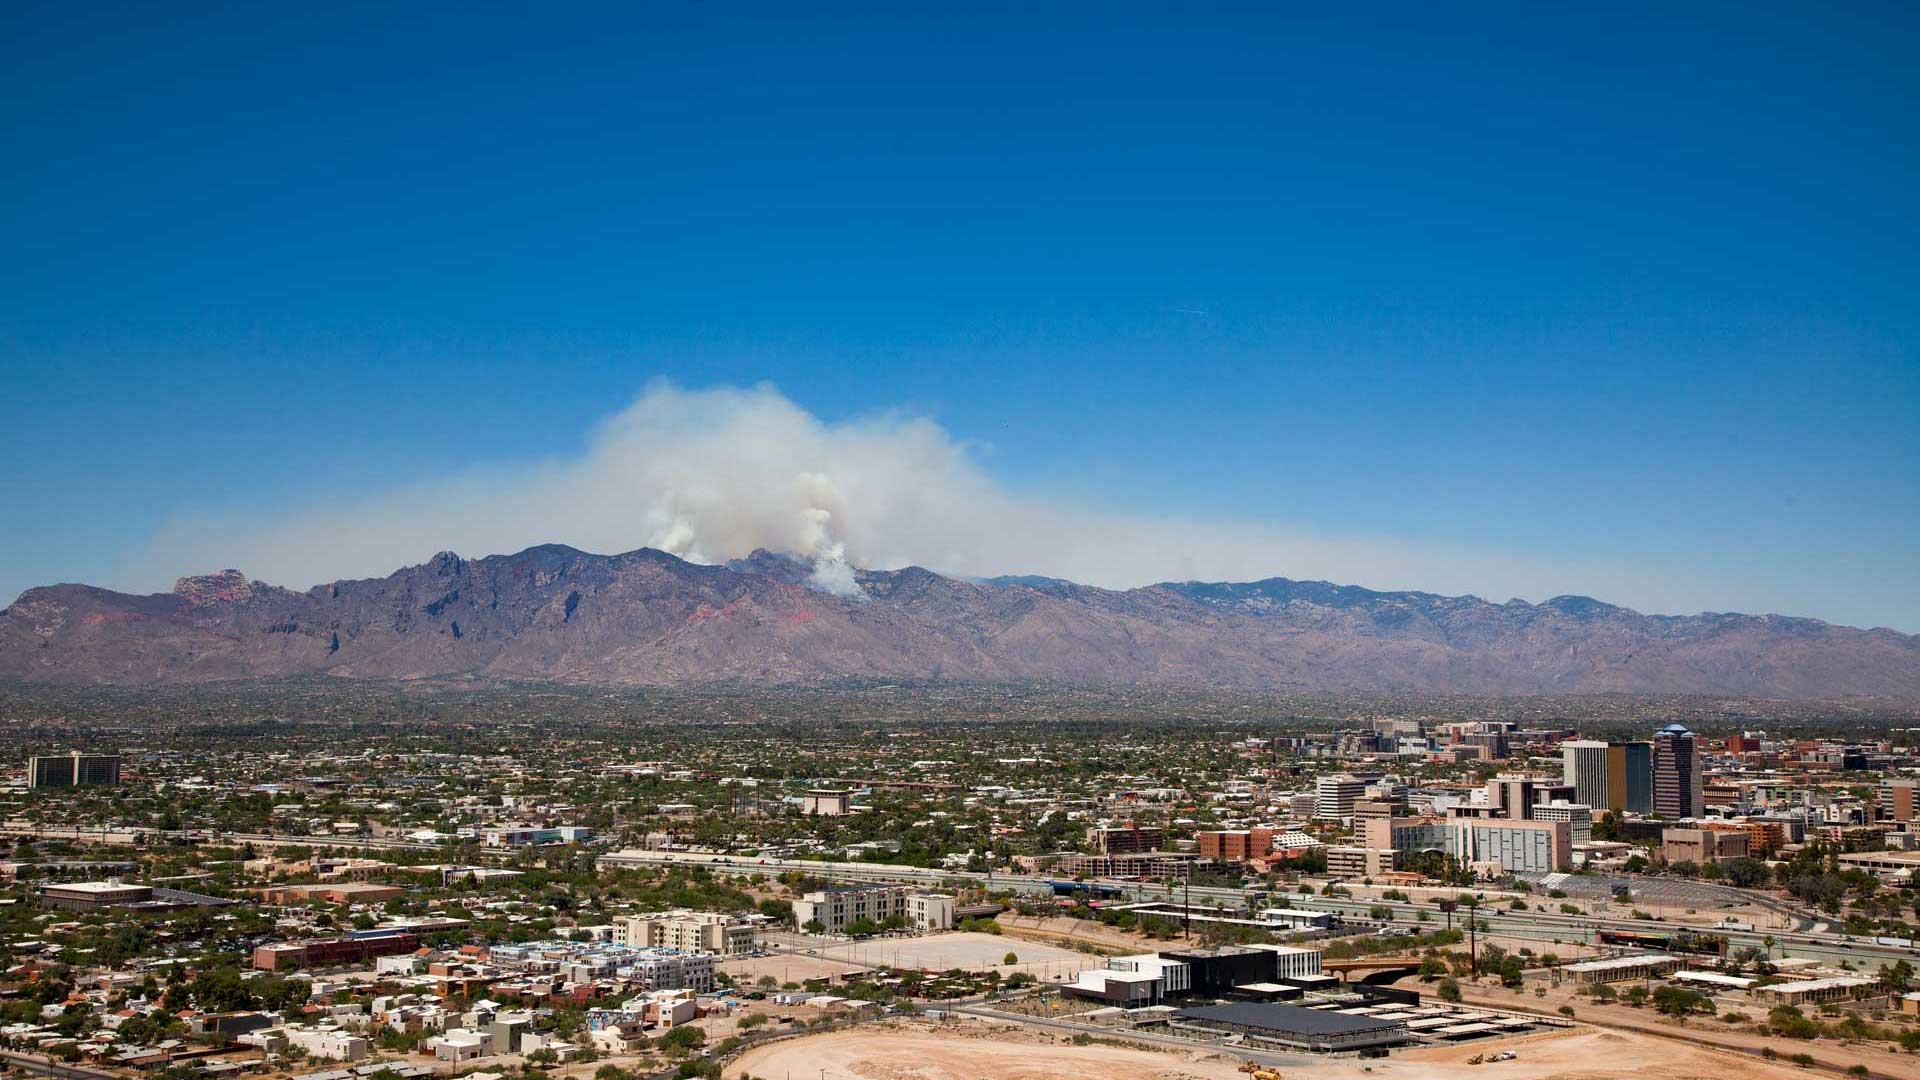 The Bighorn Fire burns in the Santa Catalina Mountains above Tucson, June 19, 2020.